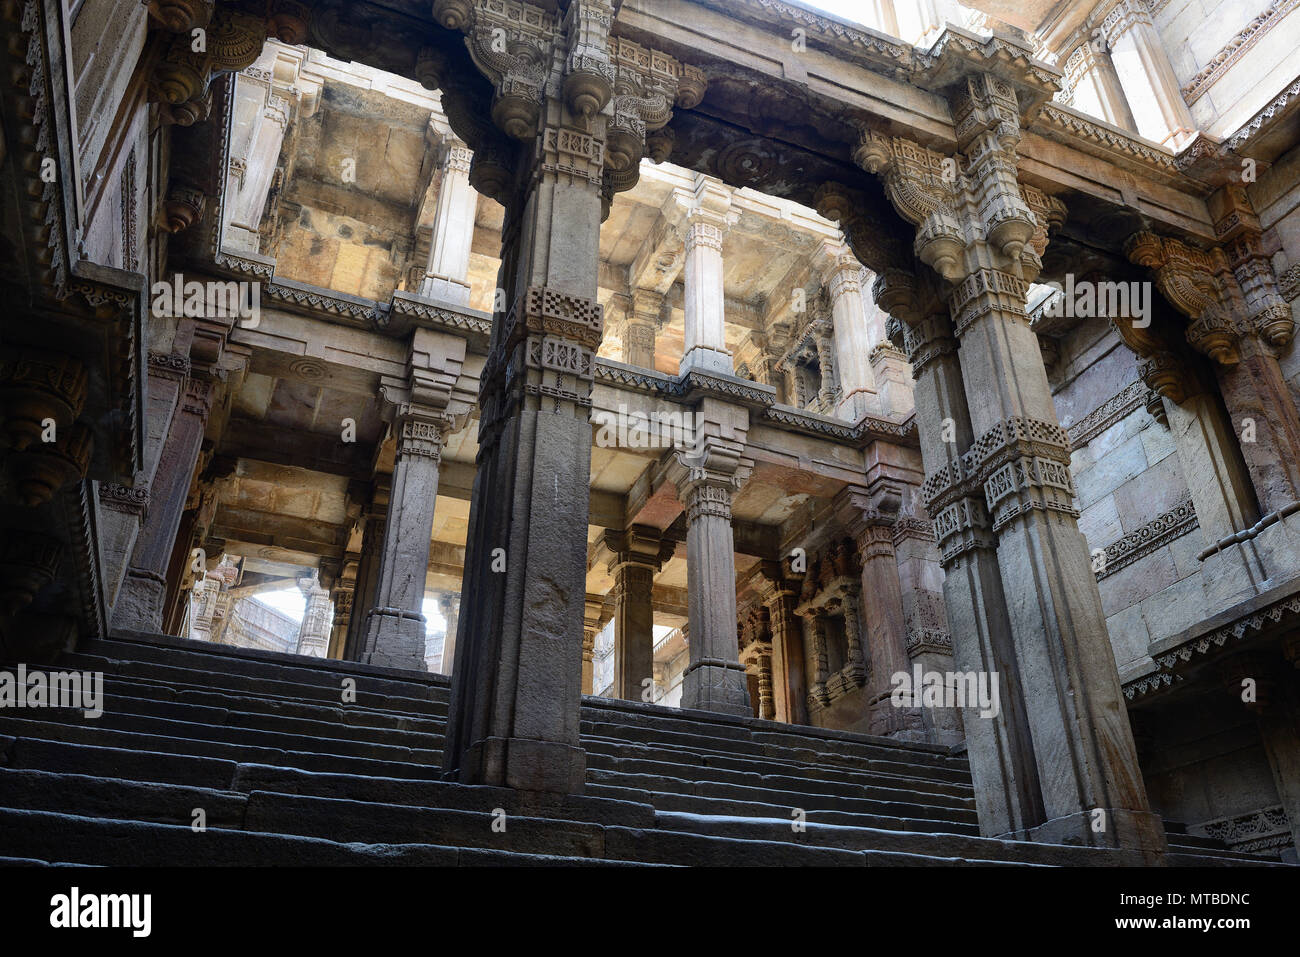 India, Adalaj Stepwell is a Hindu water building in the village of Adalaj, close to Ahmedabad town in the Indian state of Gujarat. - Stock Image